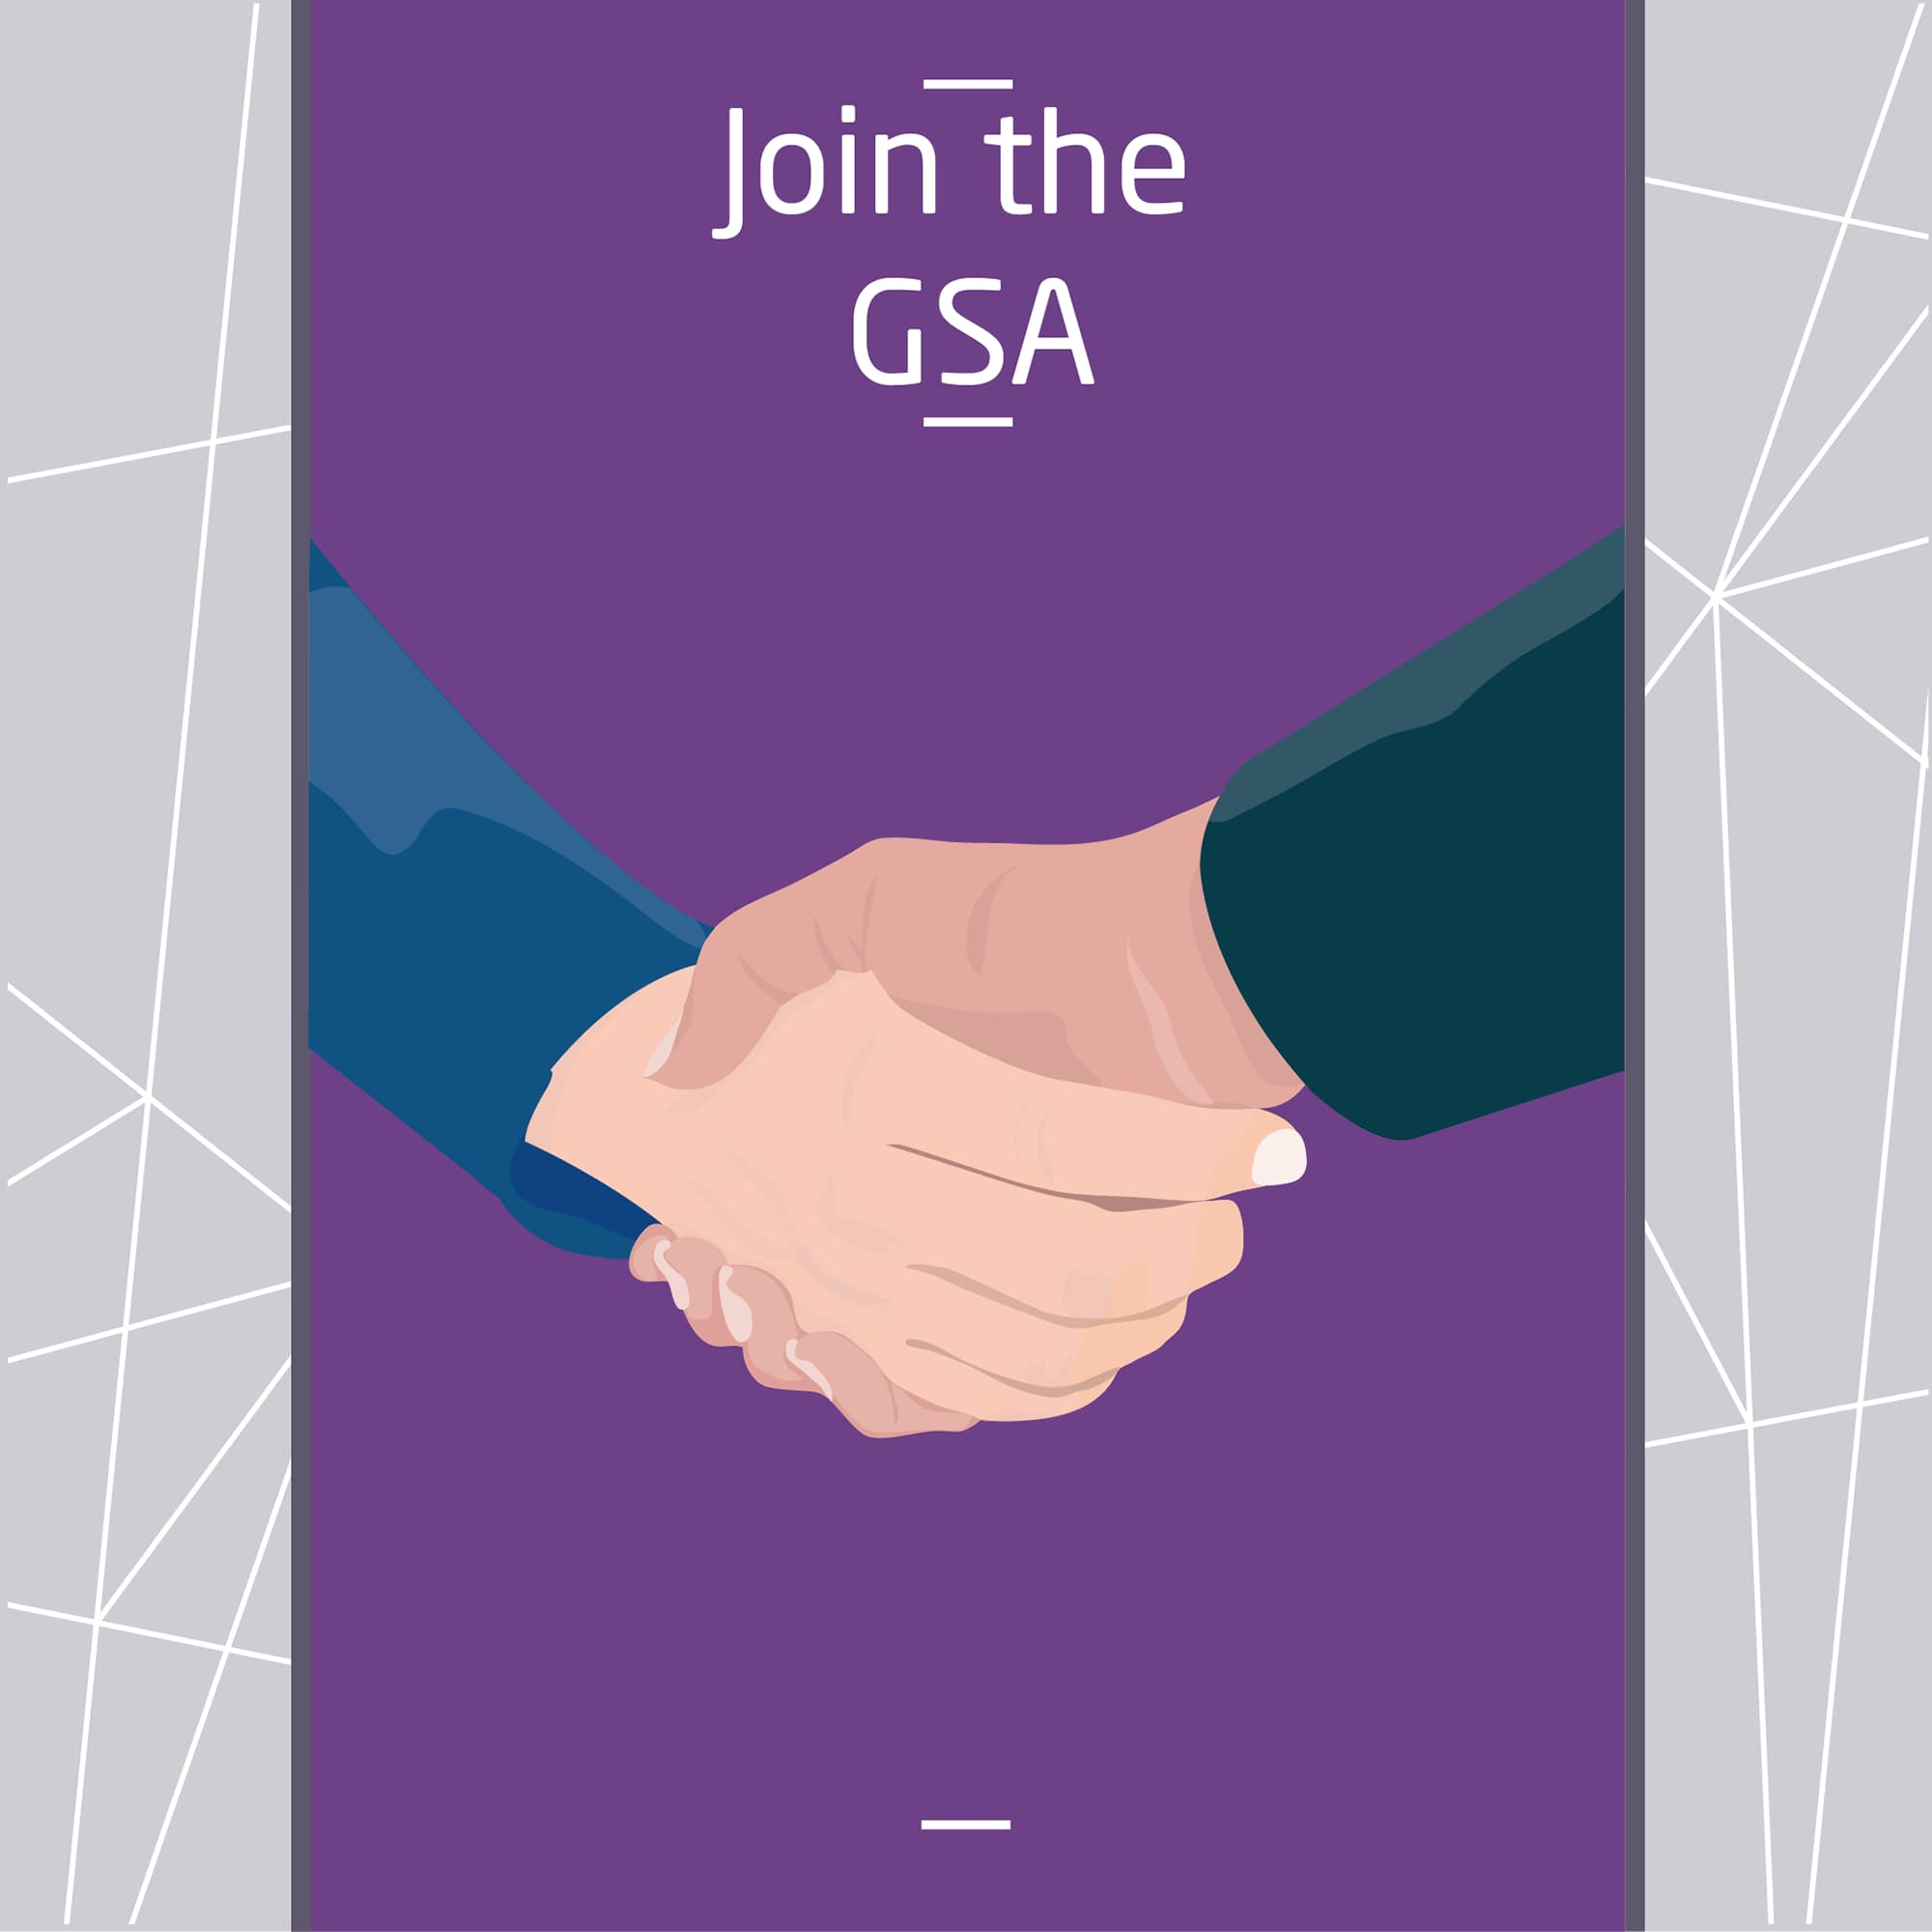 Join the GSA